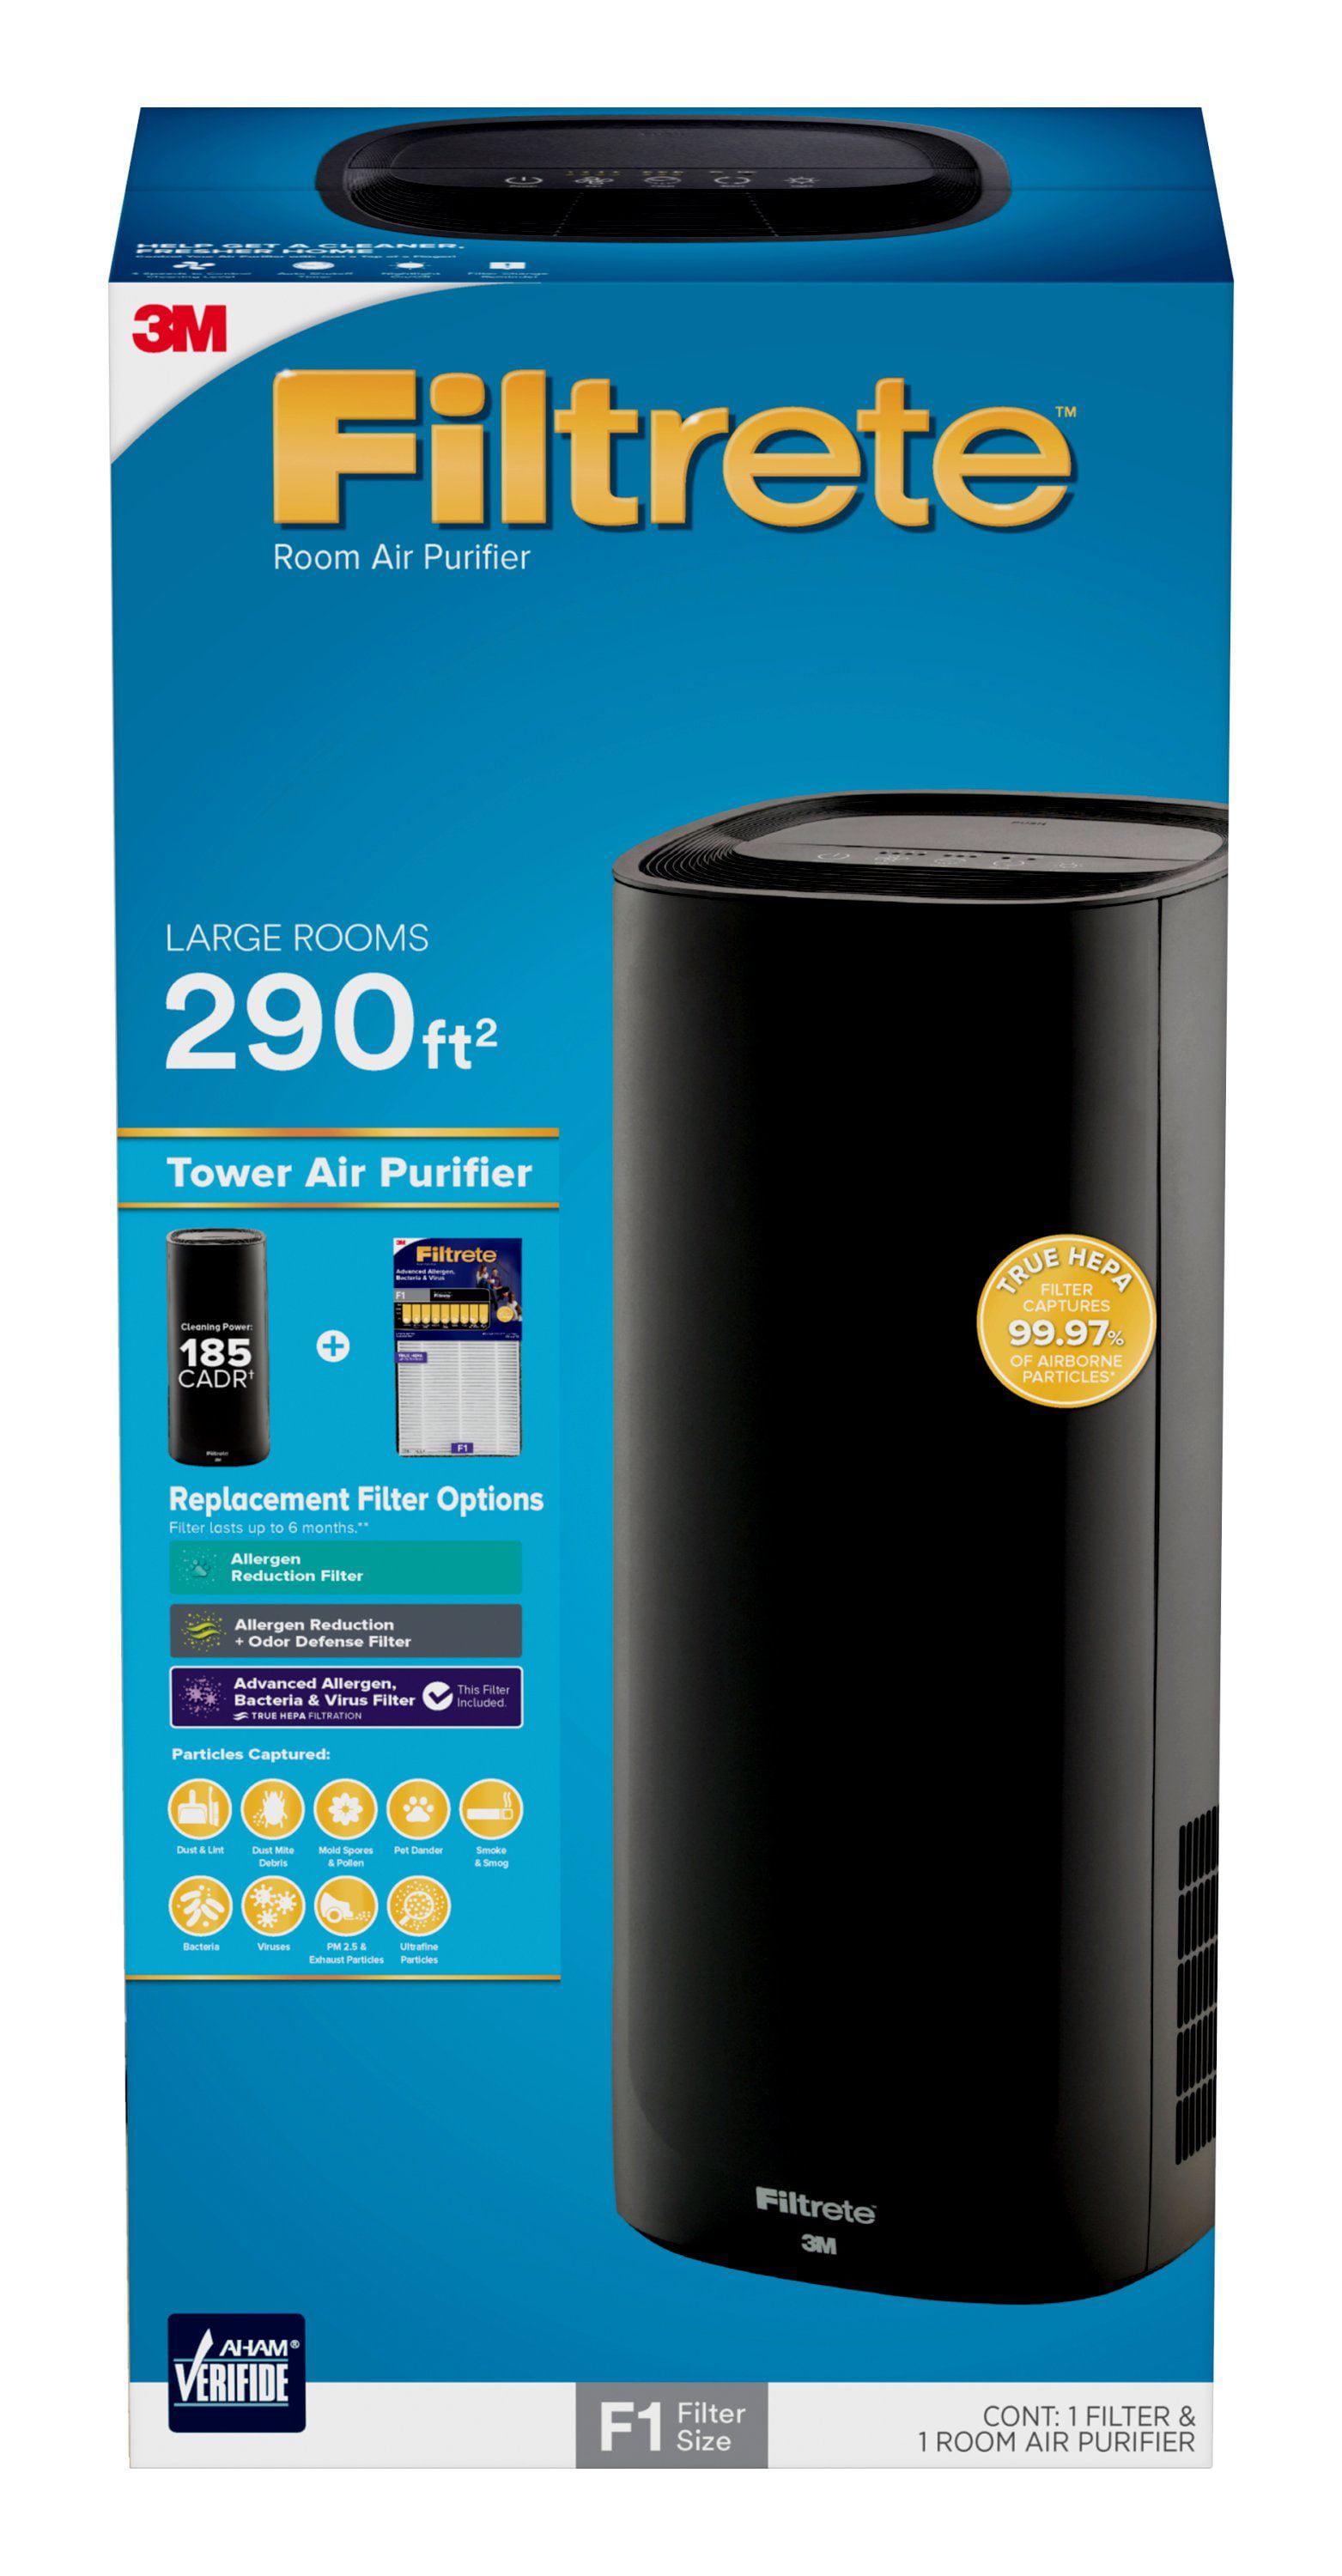 Filtrete by 3M Room Air Purifier, Large Room Tower, 290 SQ Ft ...